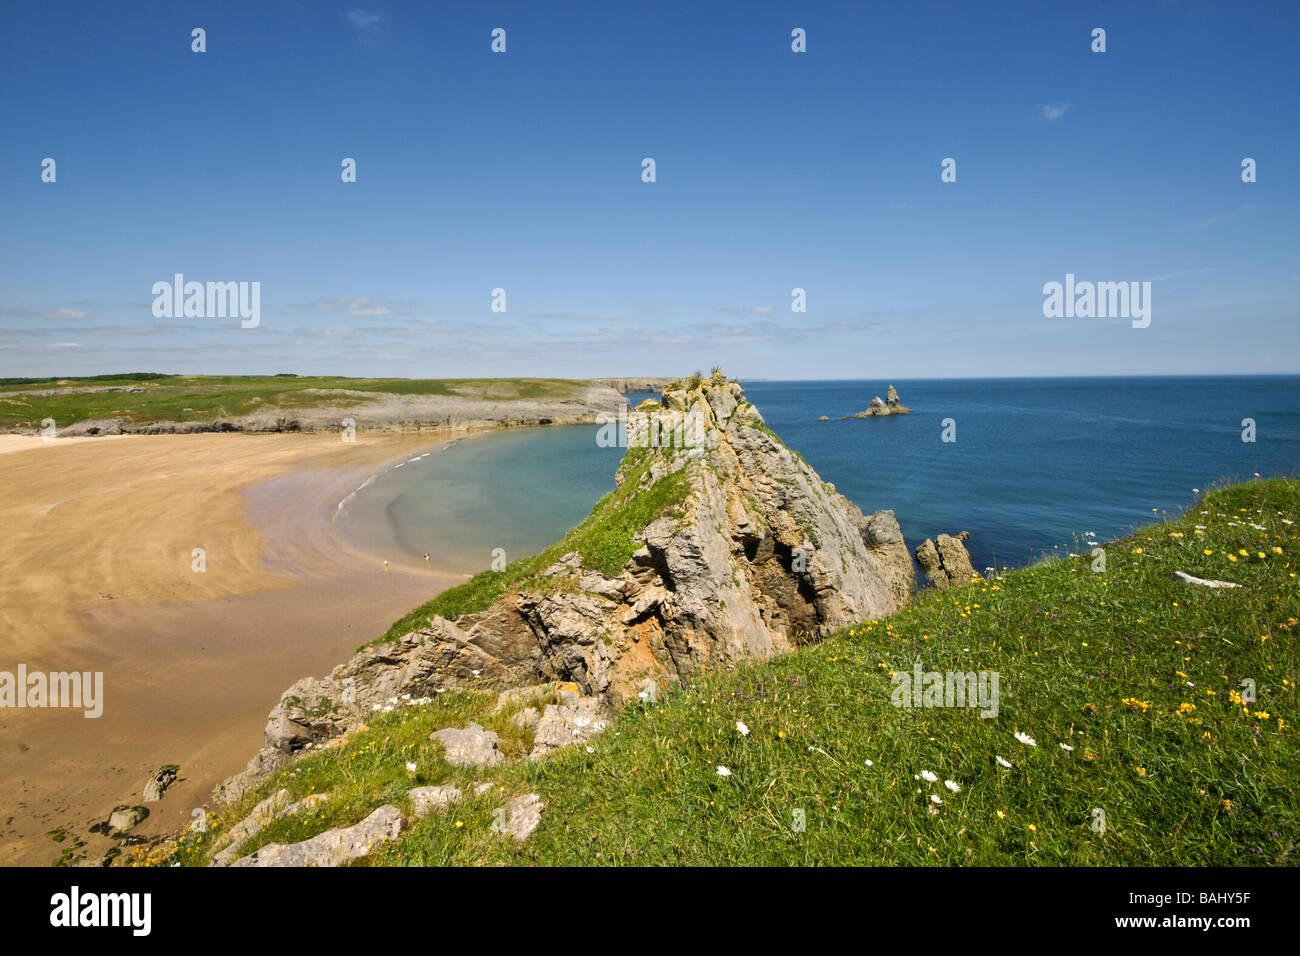 The beach at Broad Haven South, Pembrokeshire, Wales - Stock Image